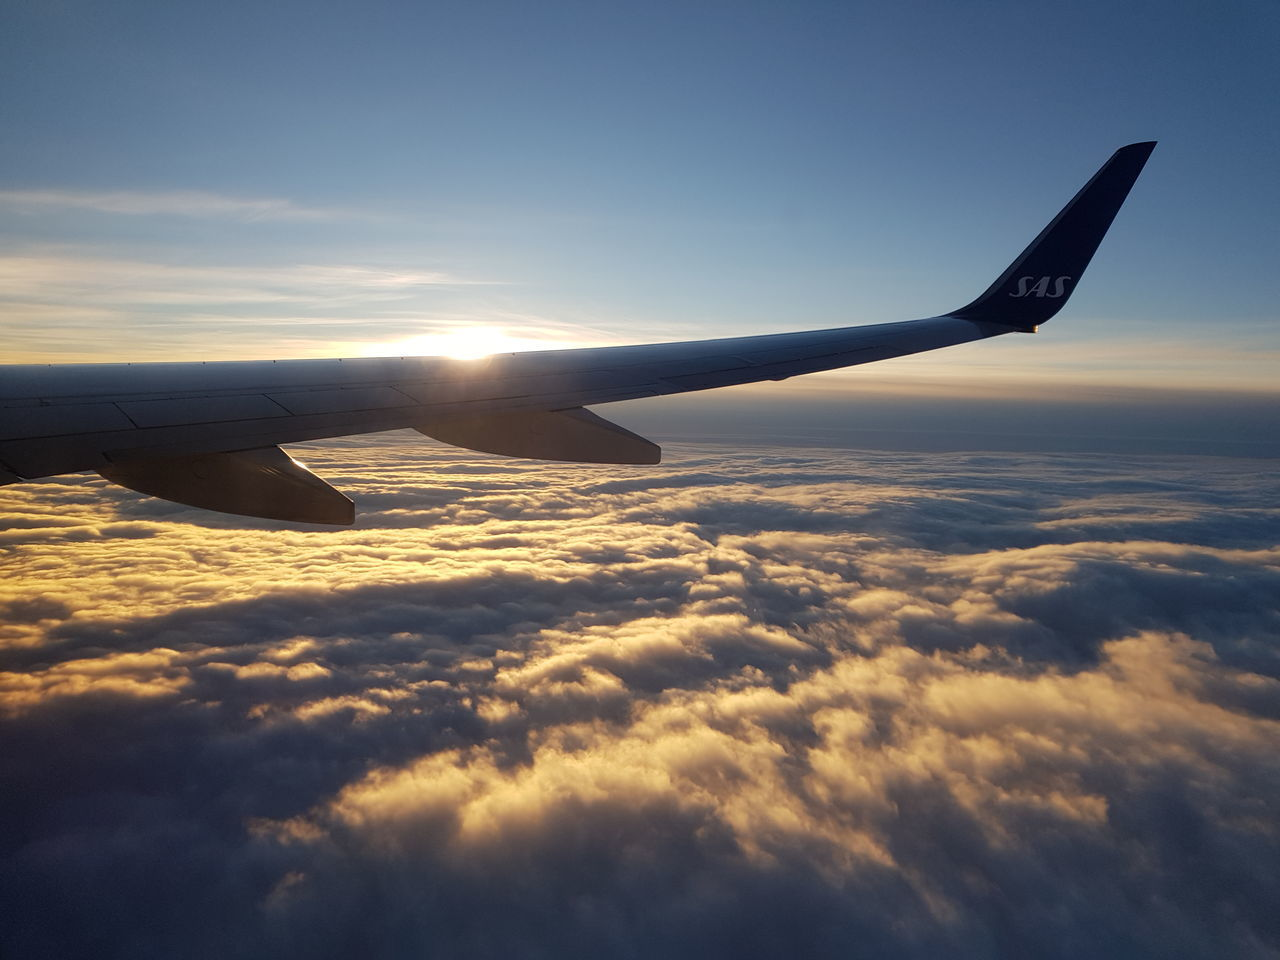 air vehicle, airplane, cloud - sky, sky, mode of transportation, sunset, transportation, flying, beauty in nature, scenics - nature, mid-air, aircraft wing, nature, travel, cloudscape, no people, public transportation, outdoors, orange color, idyllic, aerospace industry